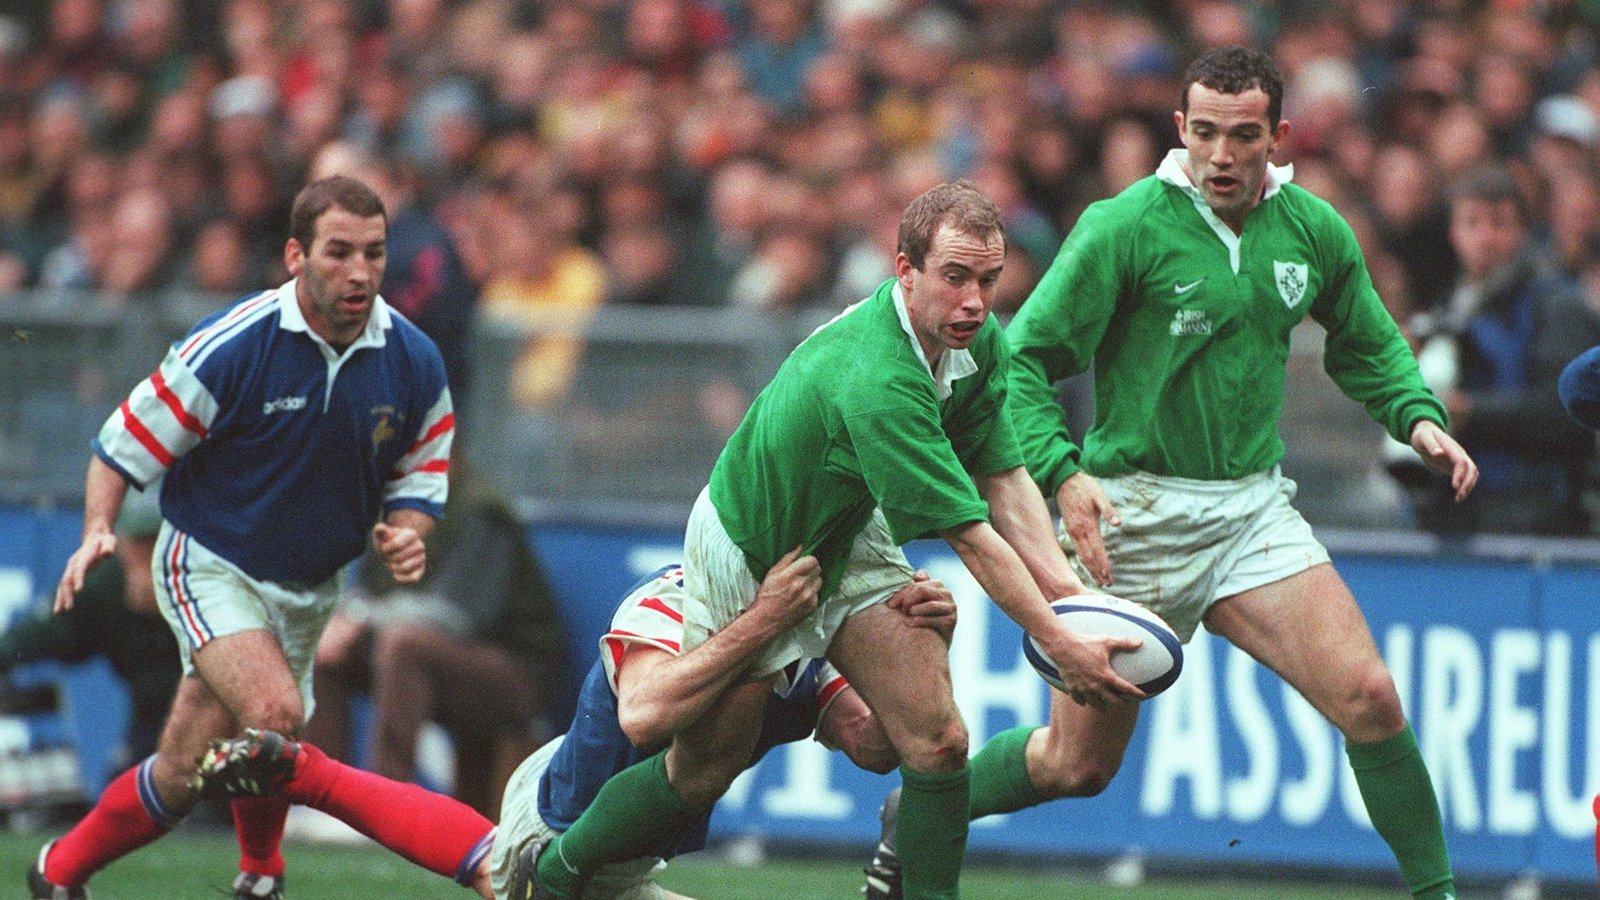 Image - Scrum half Conor McGuinness and full-back Conor O'Shea in action in Paris in 1998.